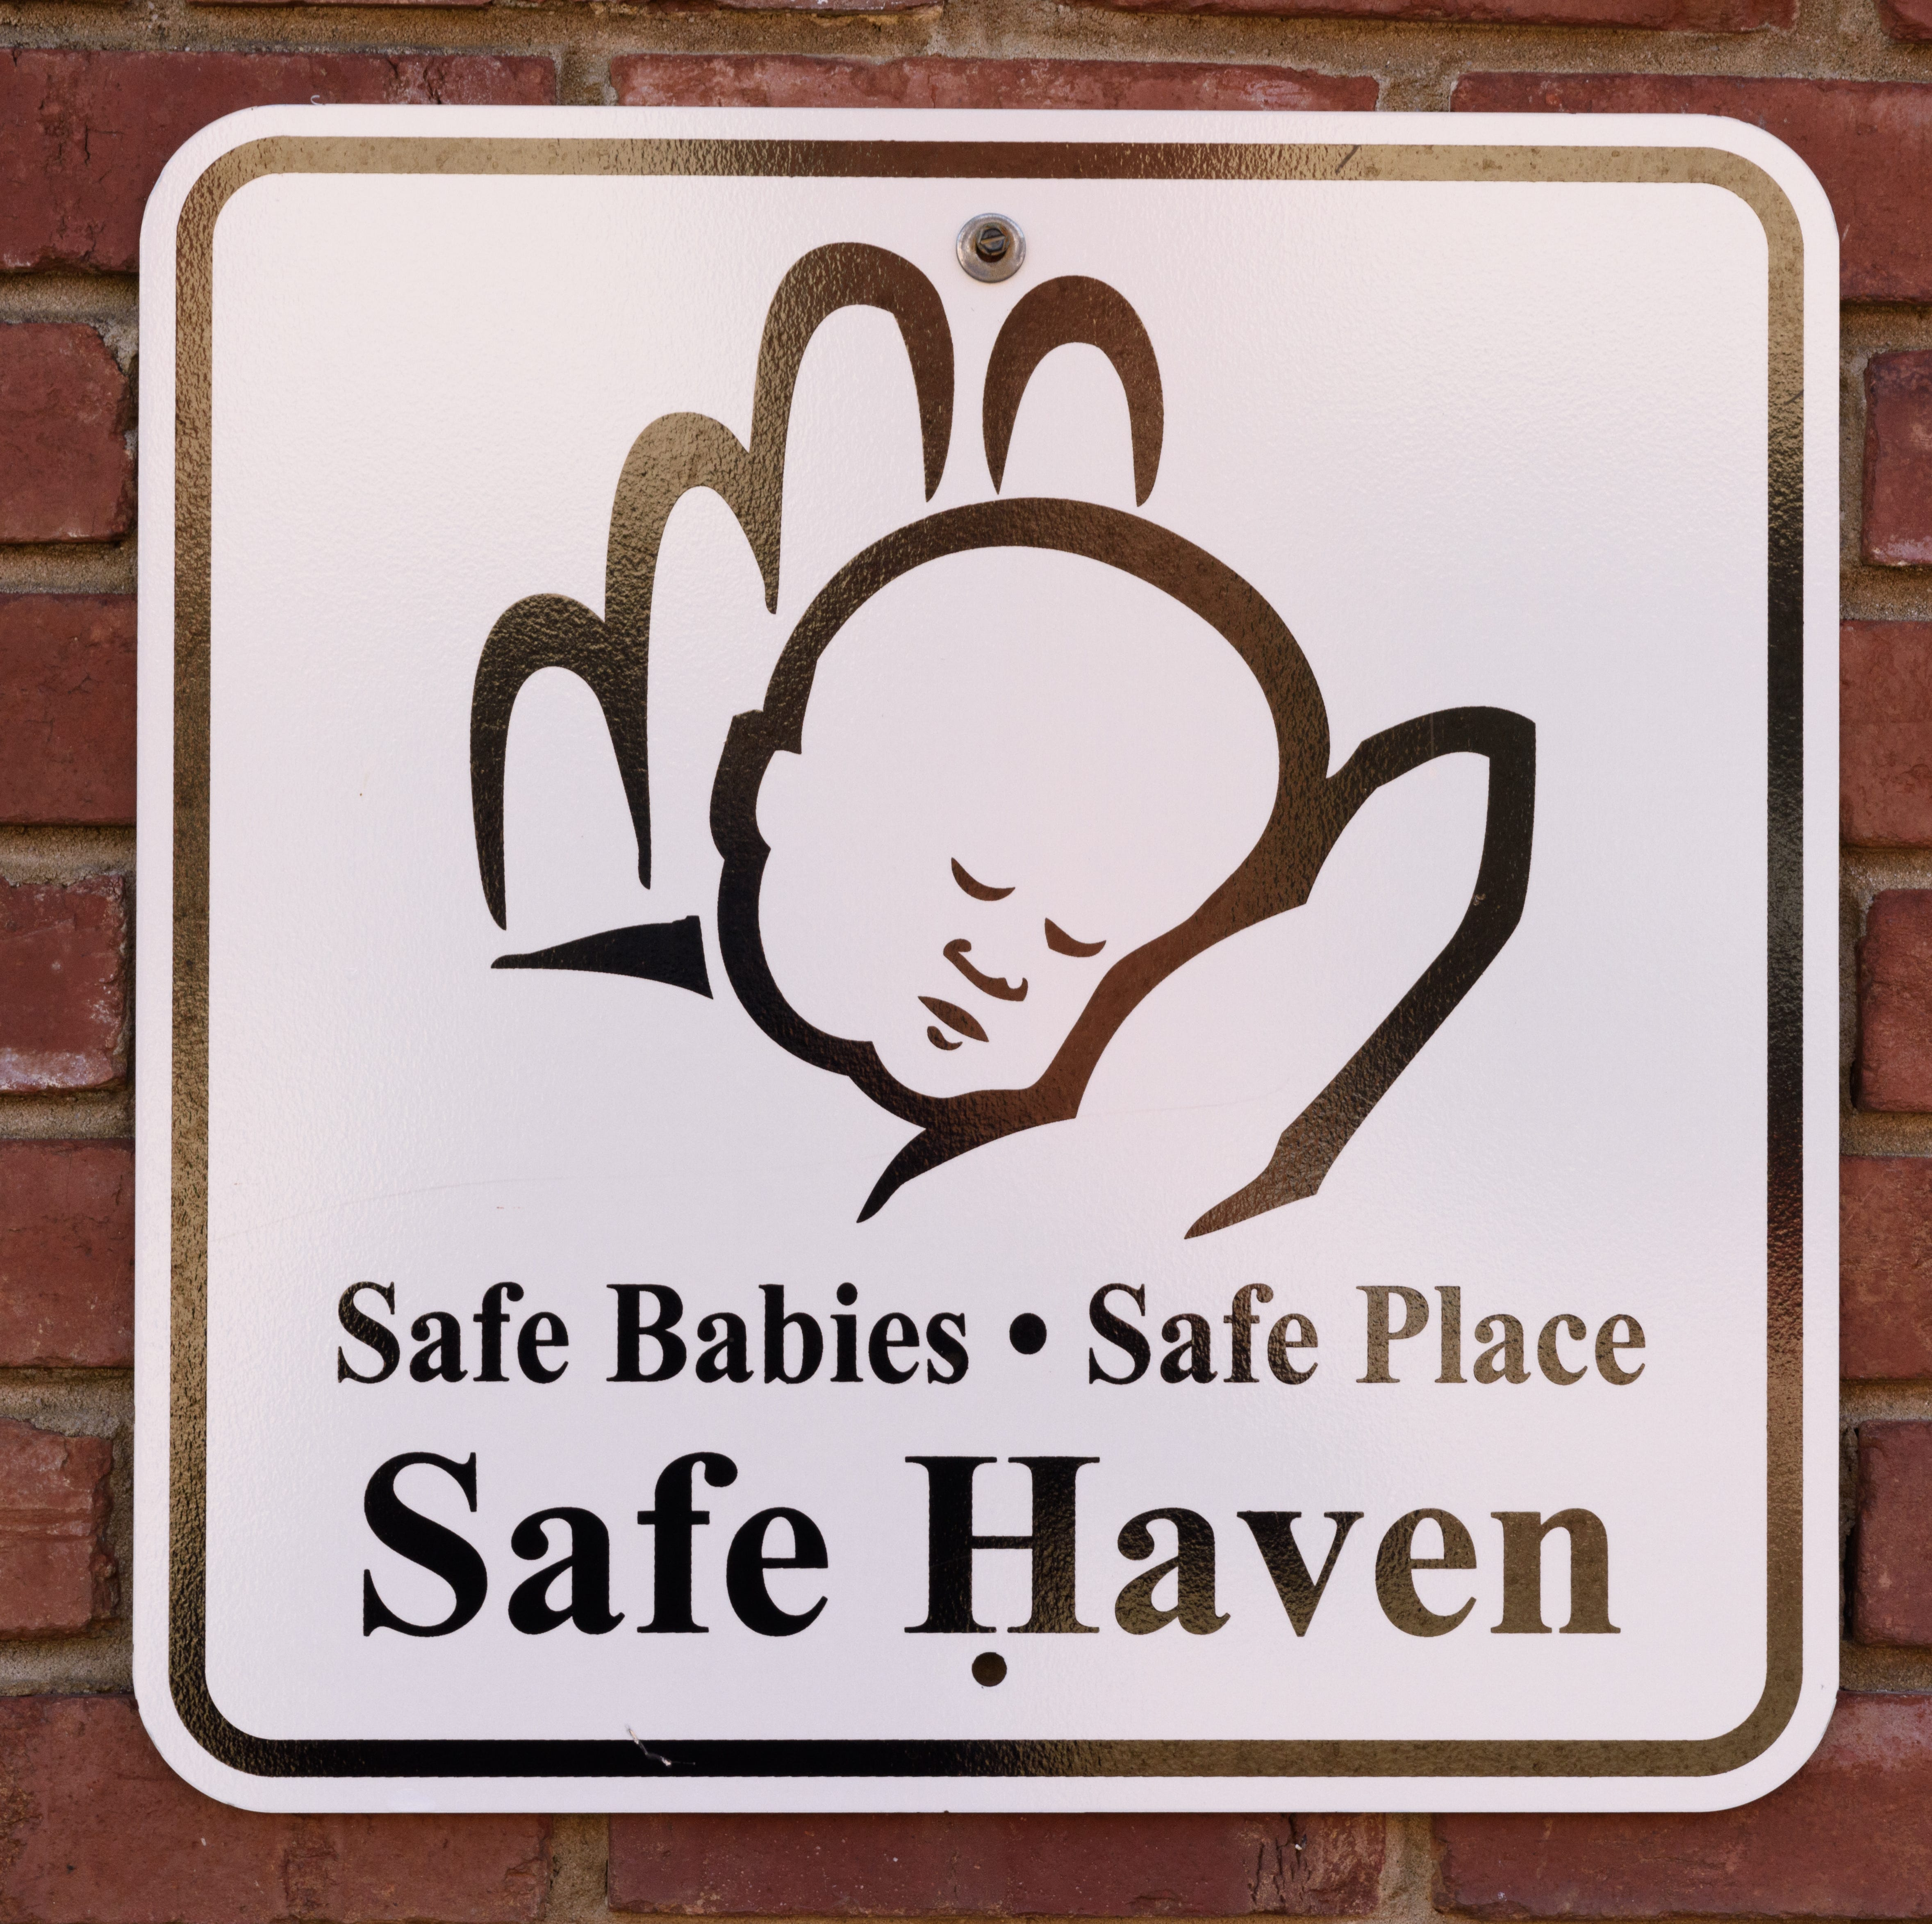 Spread word on Safe Haven before another life is lost